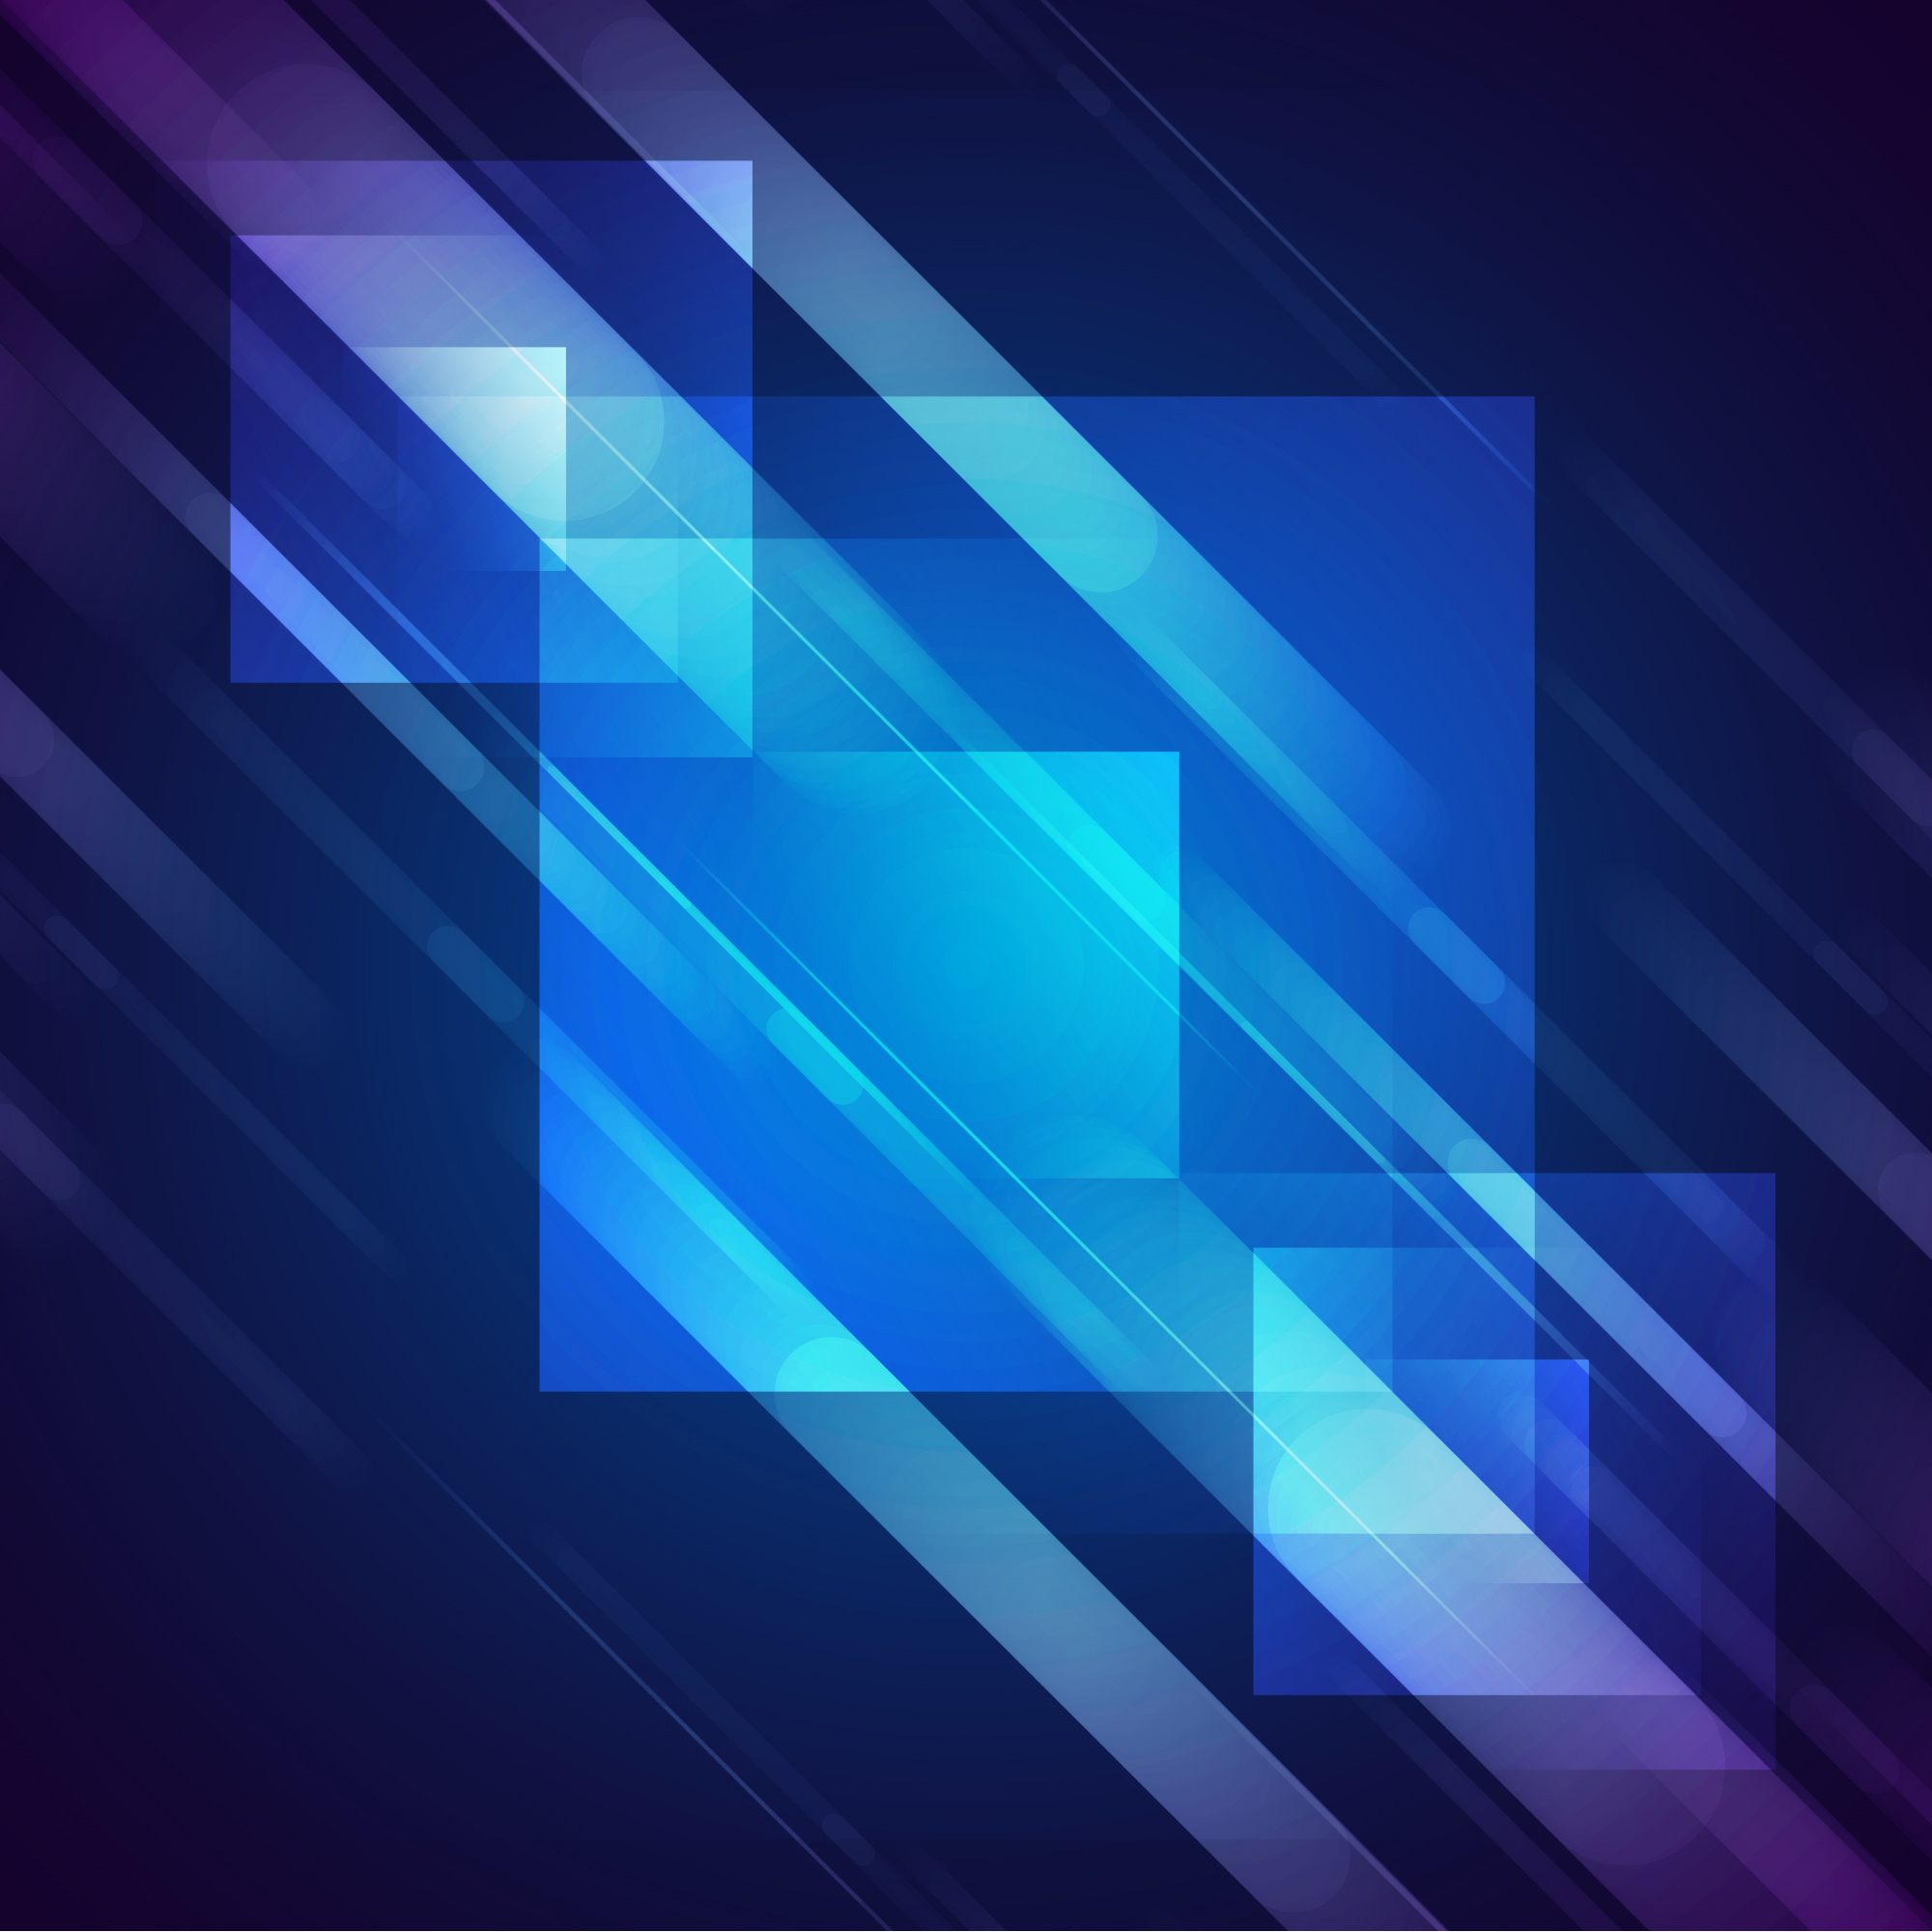 Shiny squares background design